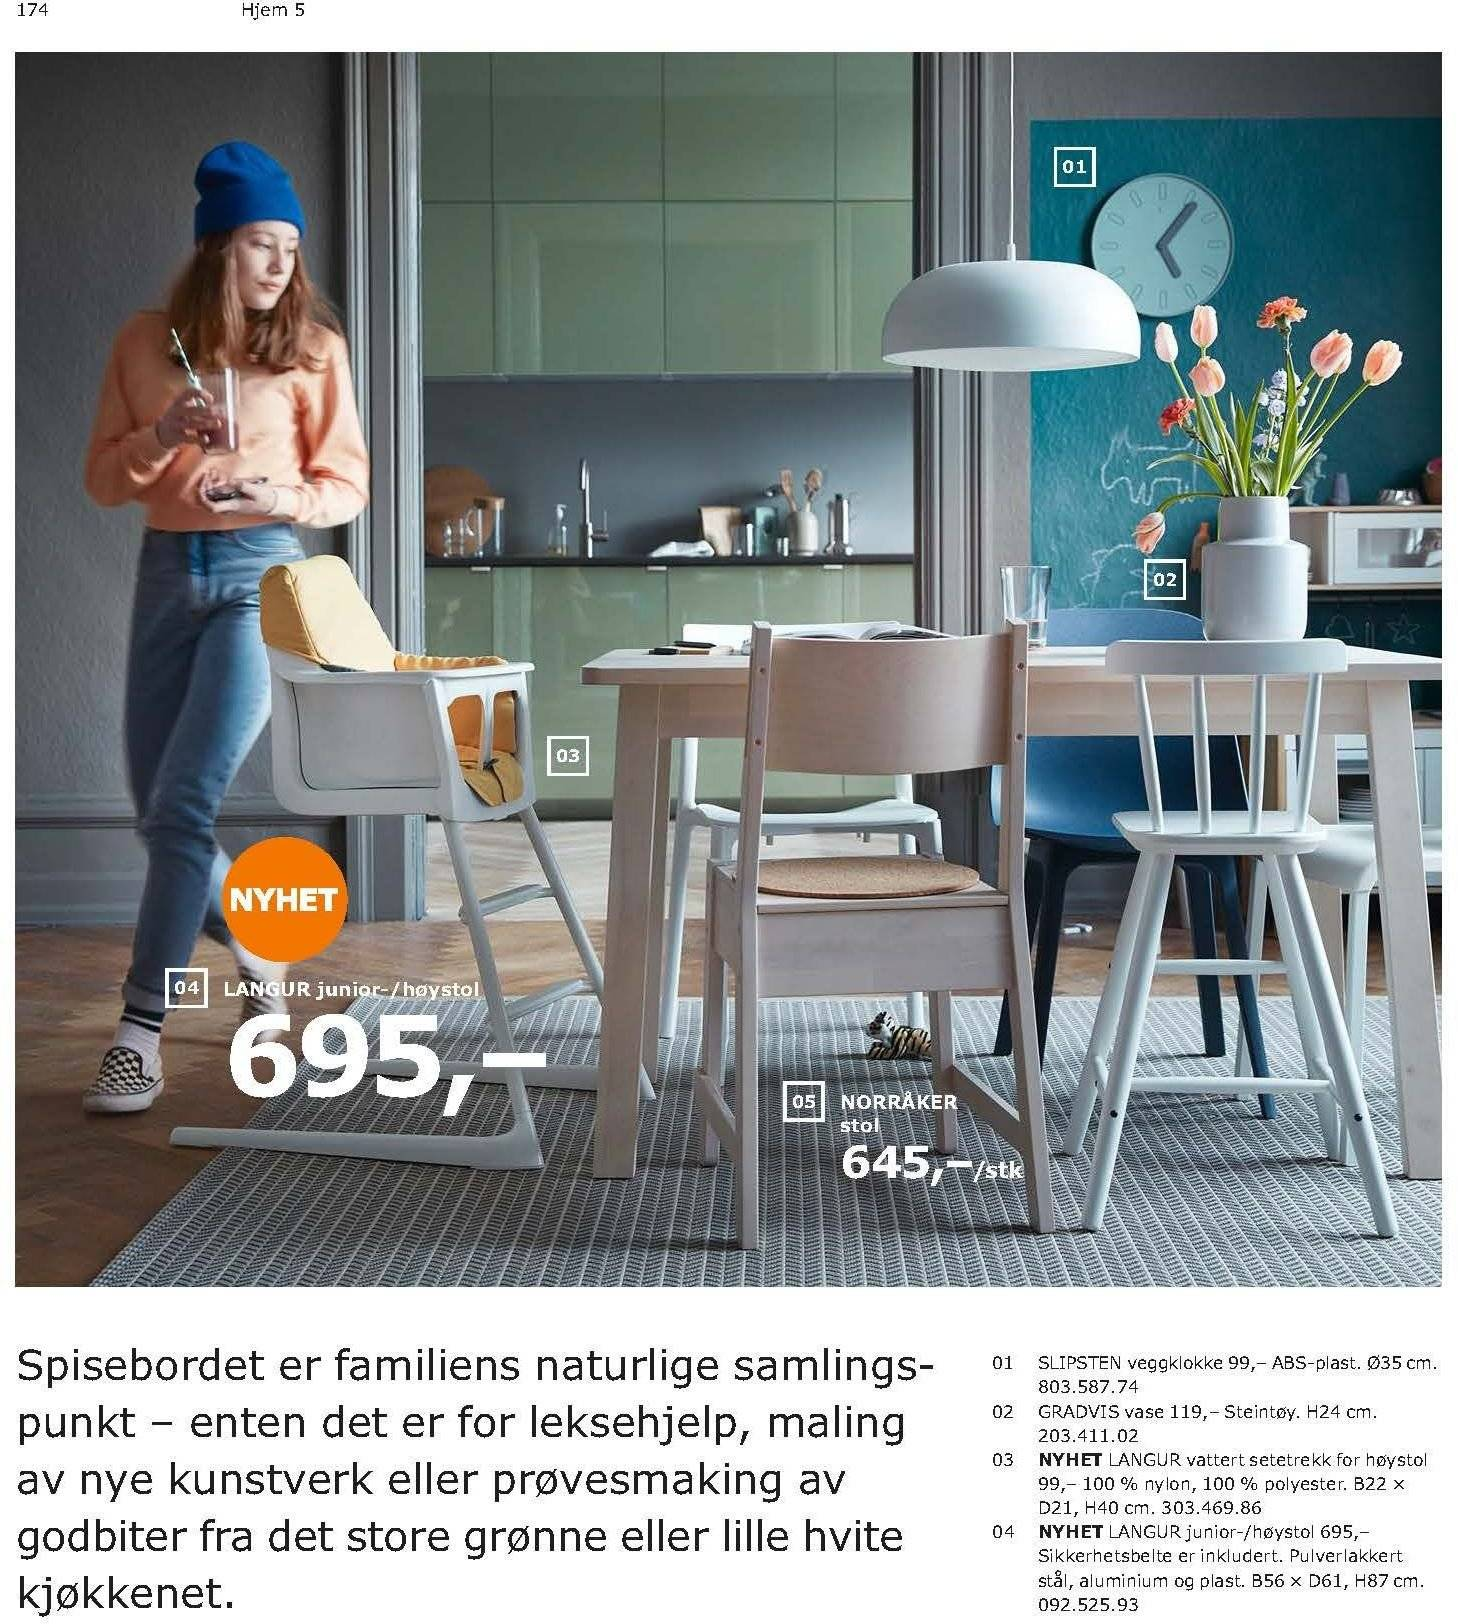 Kundeavis IKEA - 21.08.2018 - 11.08.2019. Side 174.